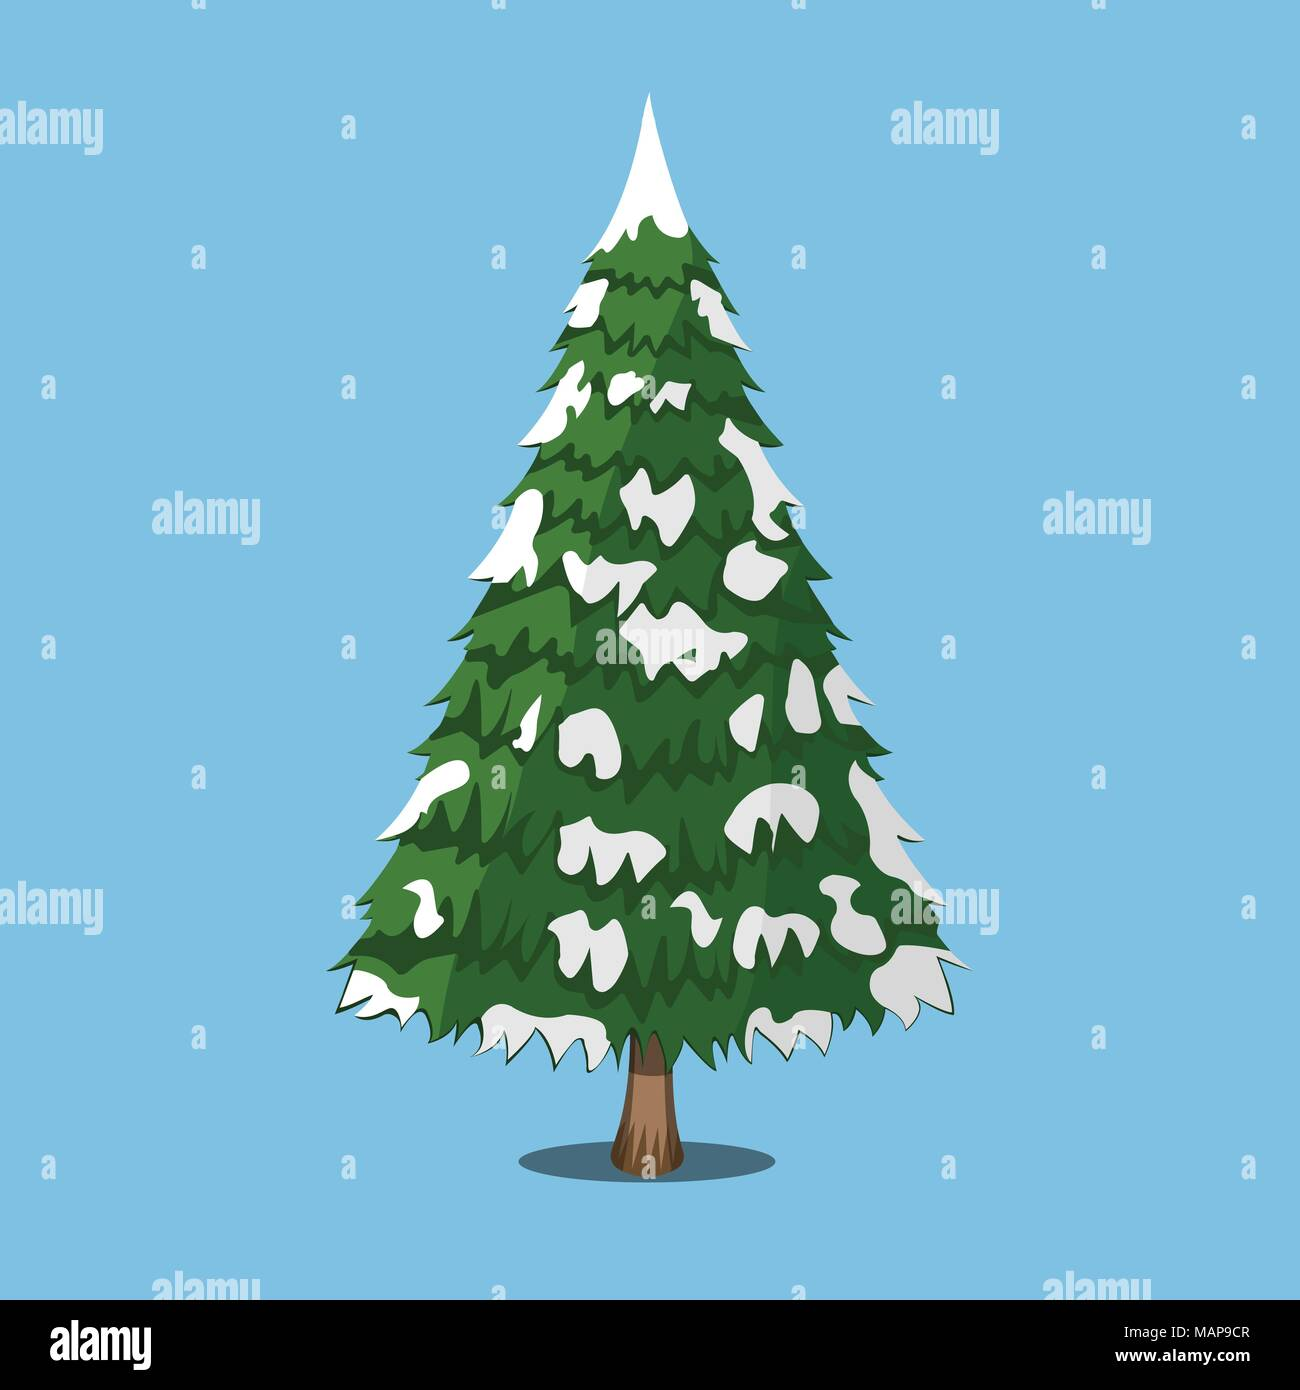 Christmas Tree Xmas Icon Cartoon Style Vector Illustration For Christmas Day Stock Vector Image Art Alamy Find & download free graphic resources for christmas tree cartoon. https www alamy com christmas tree xmas icon cartoon style vector illustration for christmas day image178740599 html